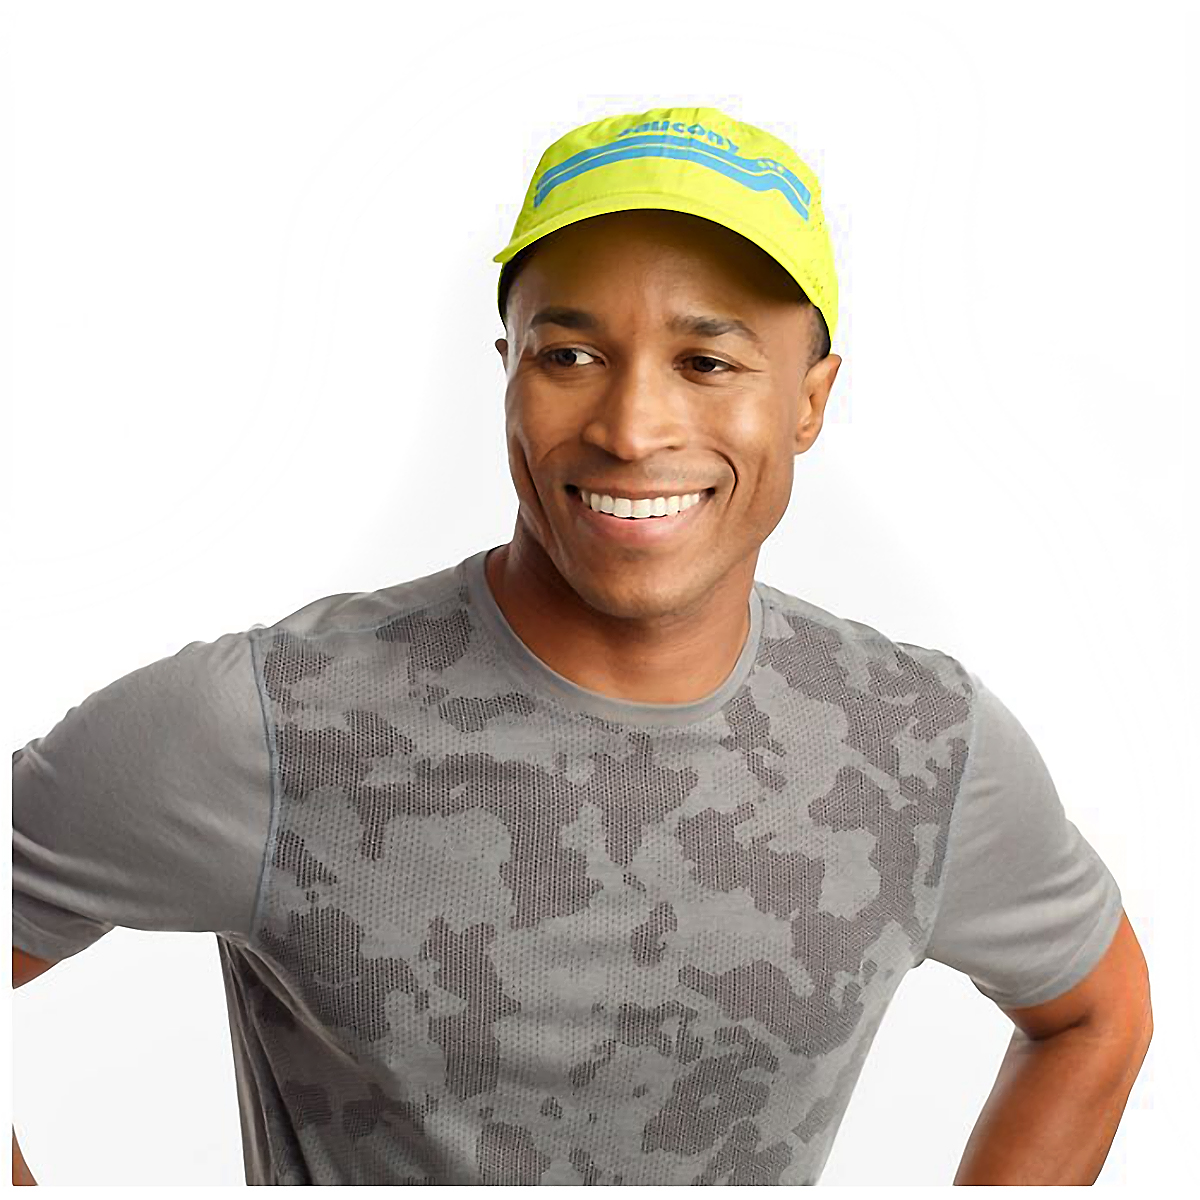 Saucony Doubleback Hat - Color: Evening Primrose, Evening Primrose, large, image 3